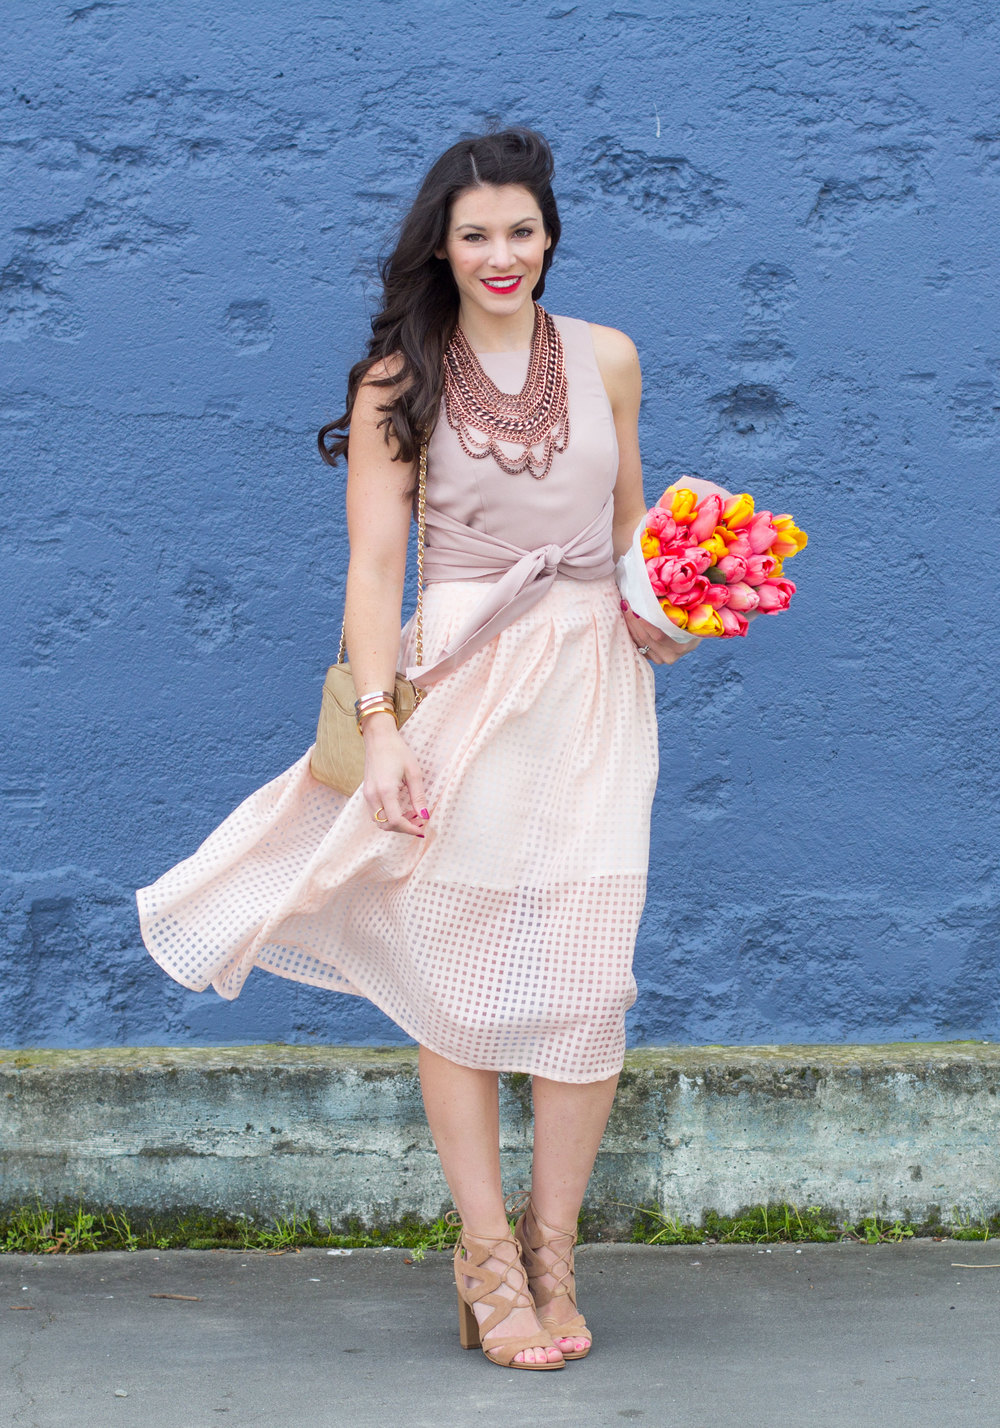 Midi Skirt Outfit, Crop Top With Midi Skirt, Baublebar Courtney Bib Necklace, Vintage Chanel Handbag, Green Drape Front Jacket, Sam Edelman Yardley Sandals, Spring Outfit